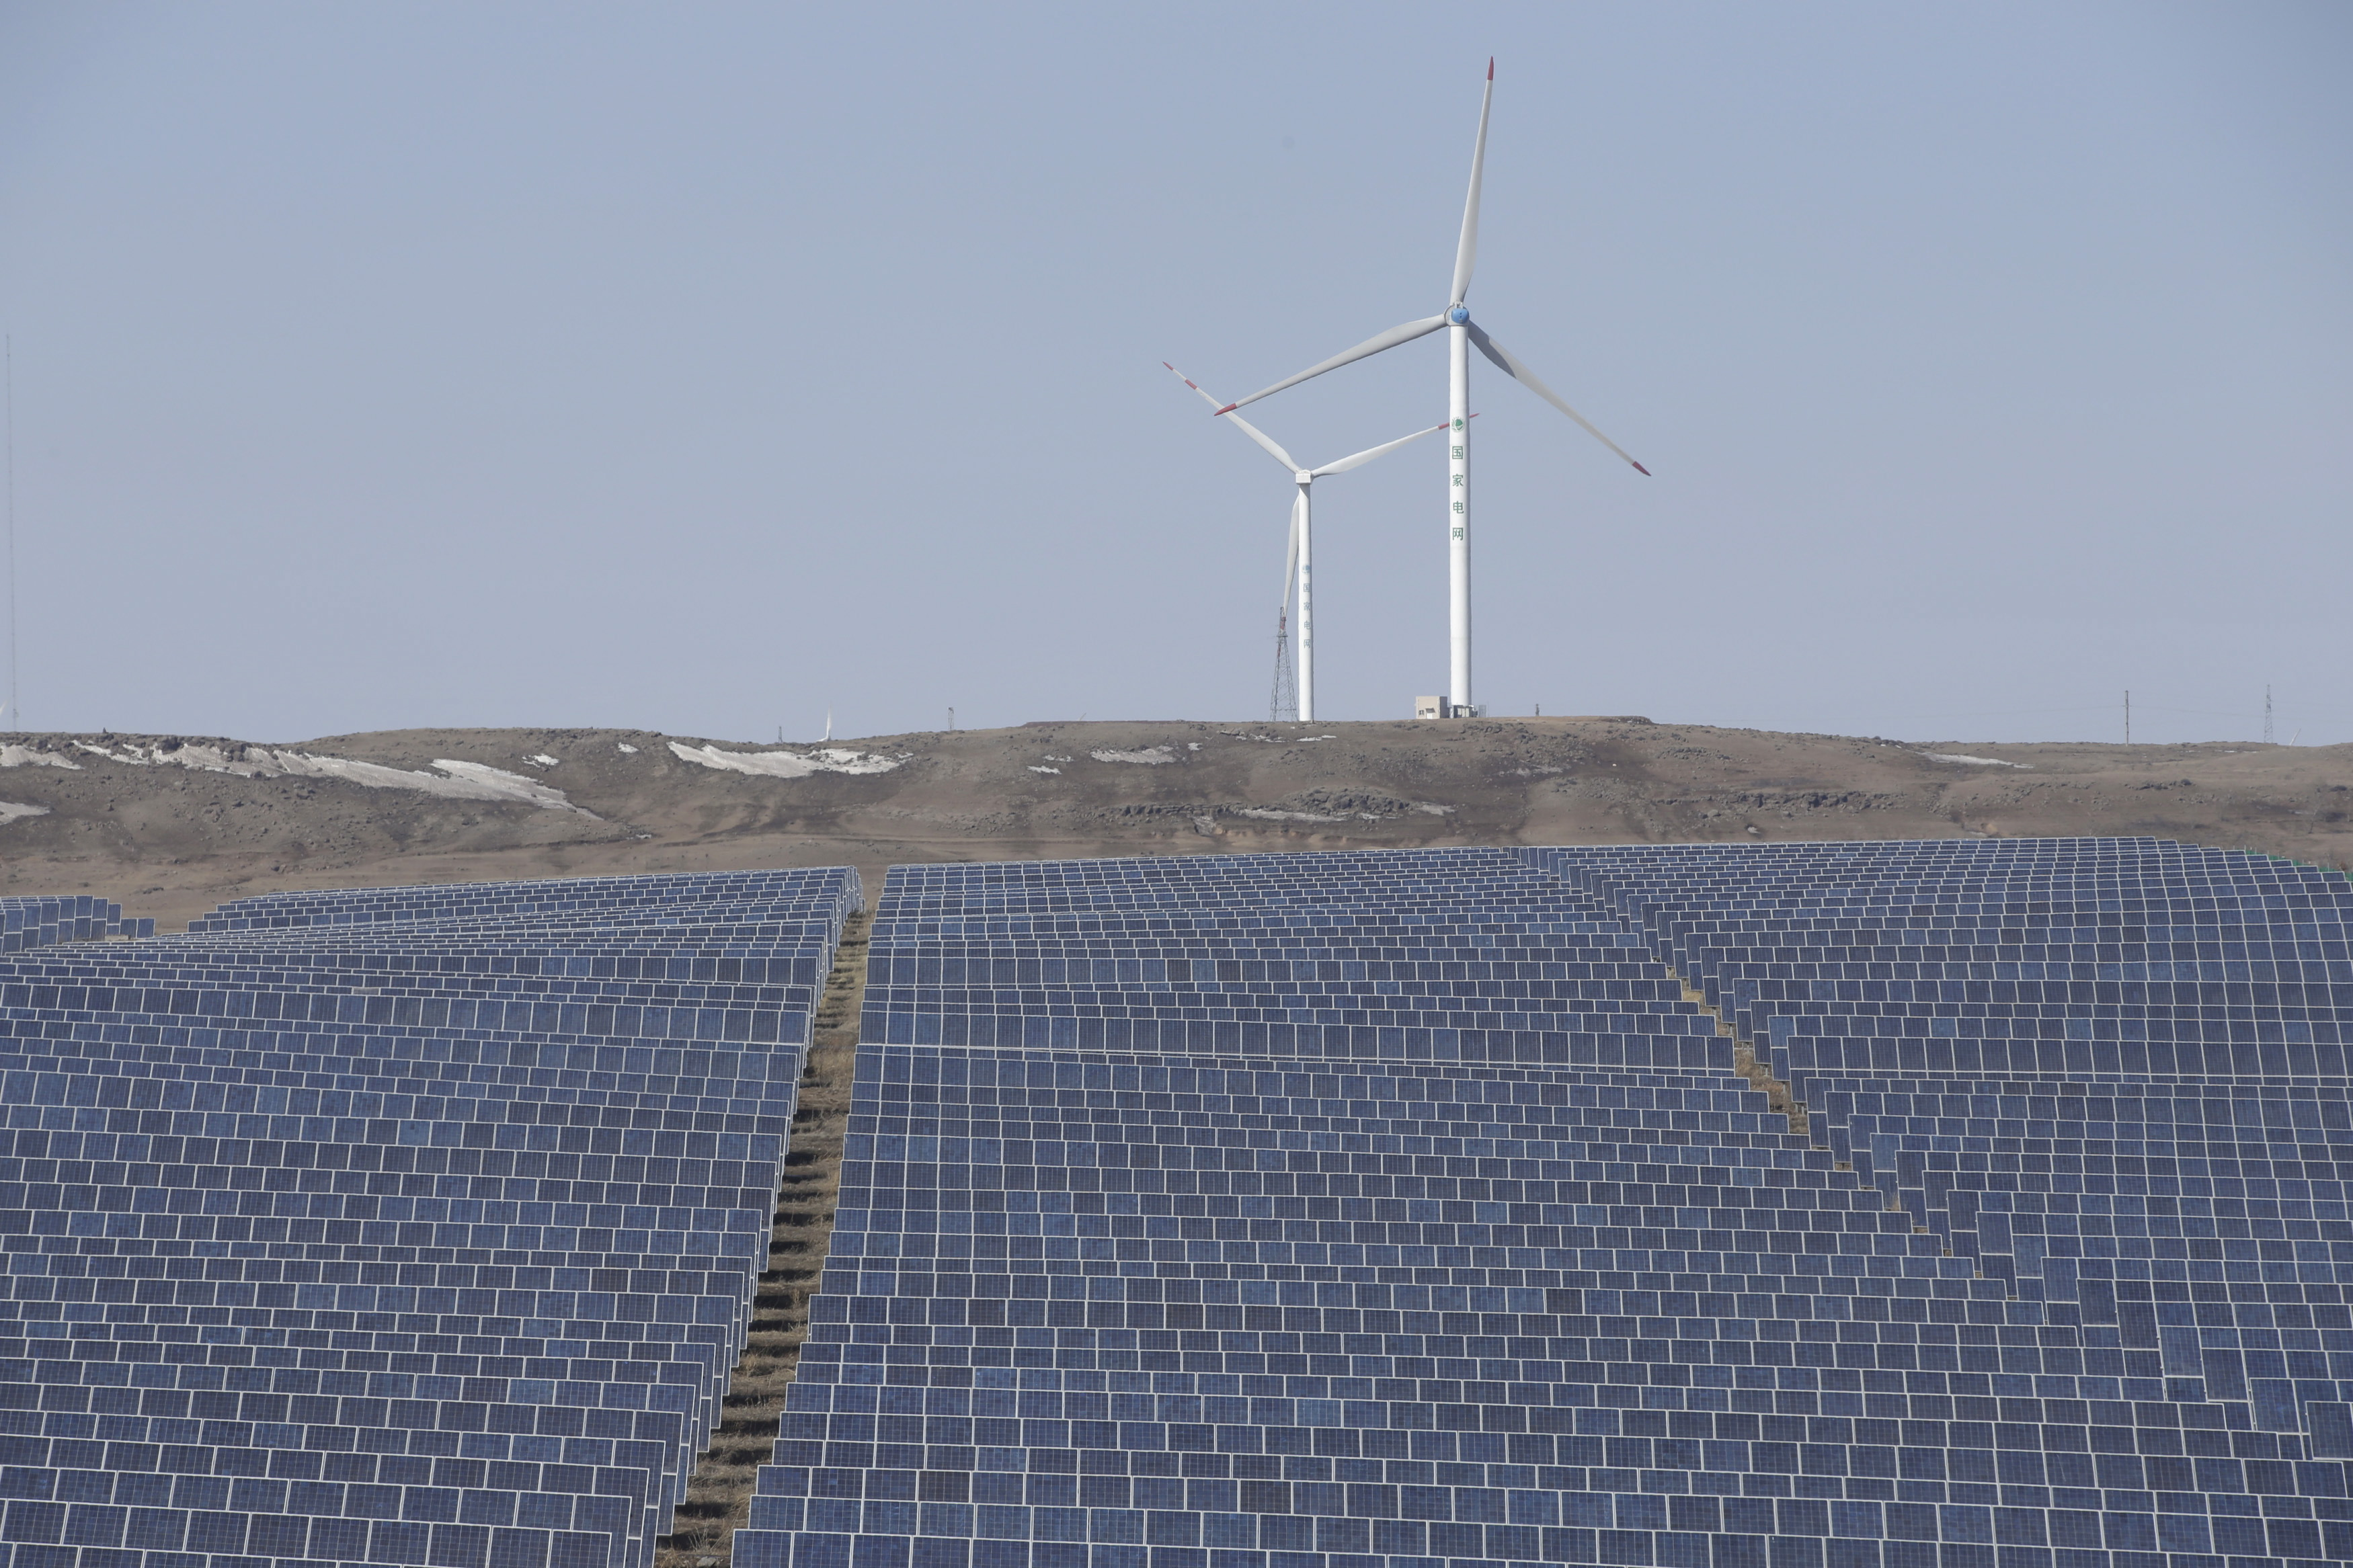 Wind turbines and solar panels are seen at a wind and solar energy storage and transmission power station from State Grid Corporation of China, in Zhangjiakou of Hebei province, China, March 18, 2016. REUTERS/Jason Lee/Files